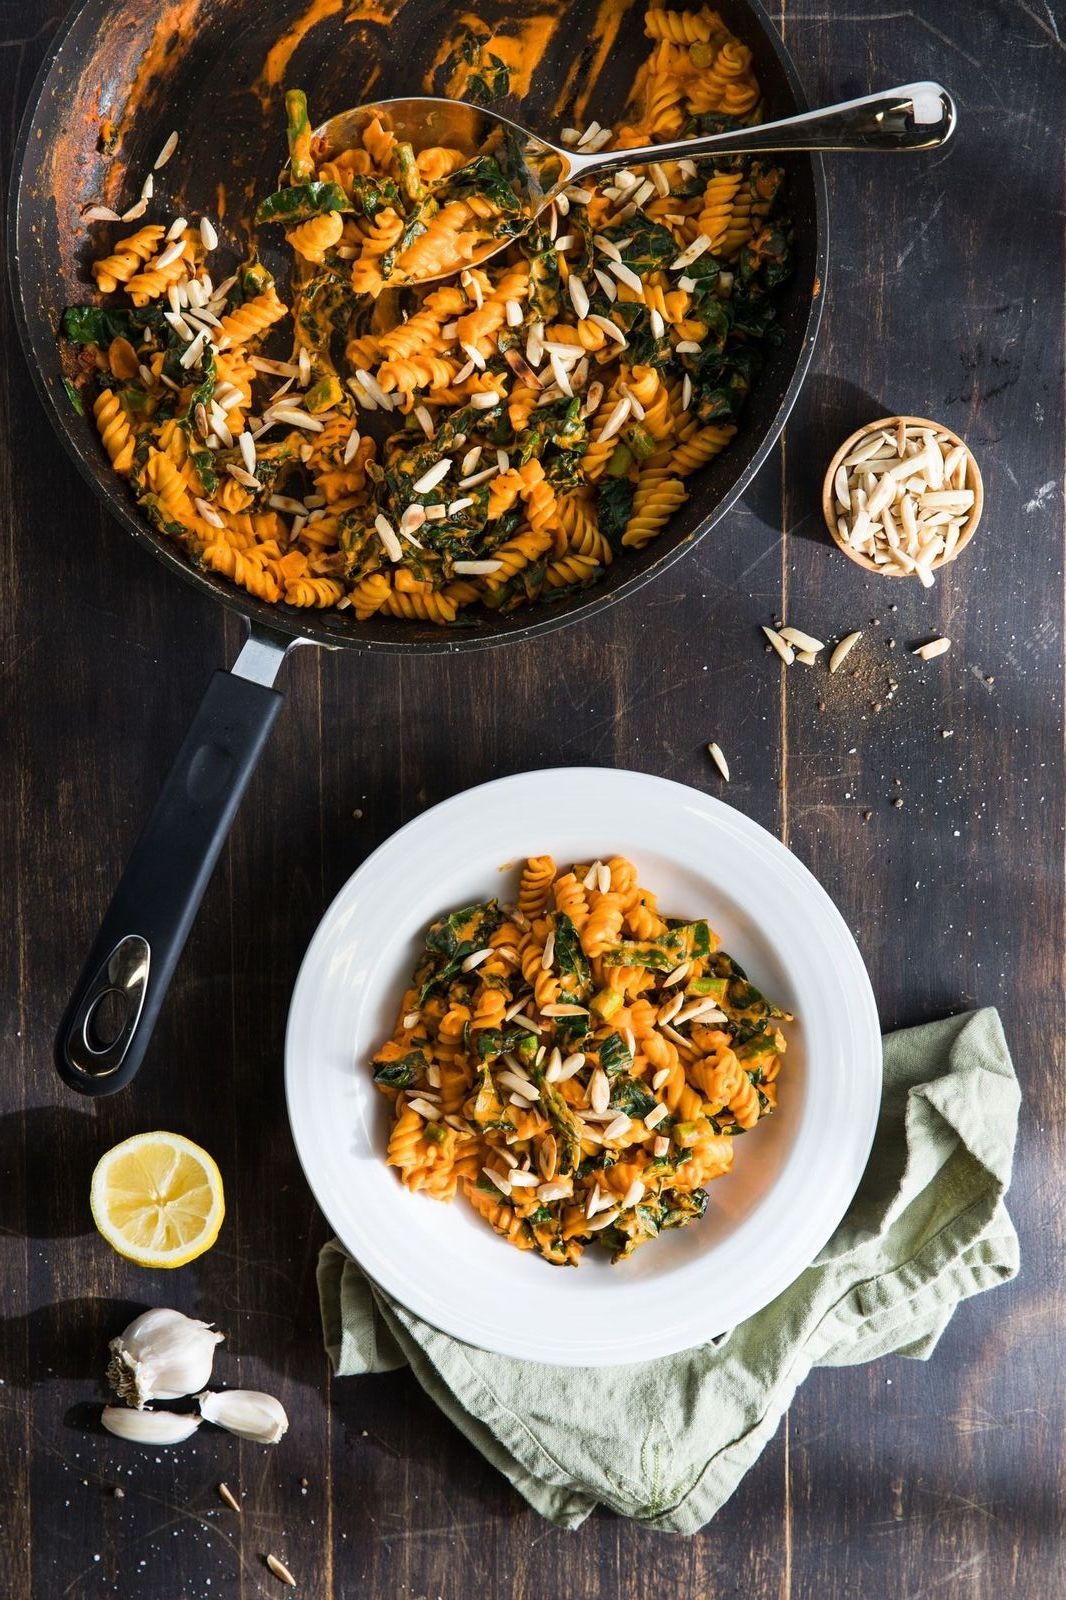 Creamy Red Pepper Rotini With Greens And Toasted Almonds